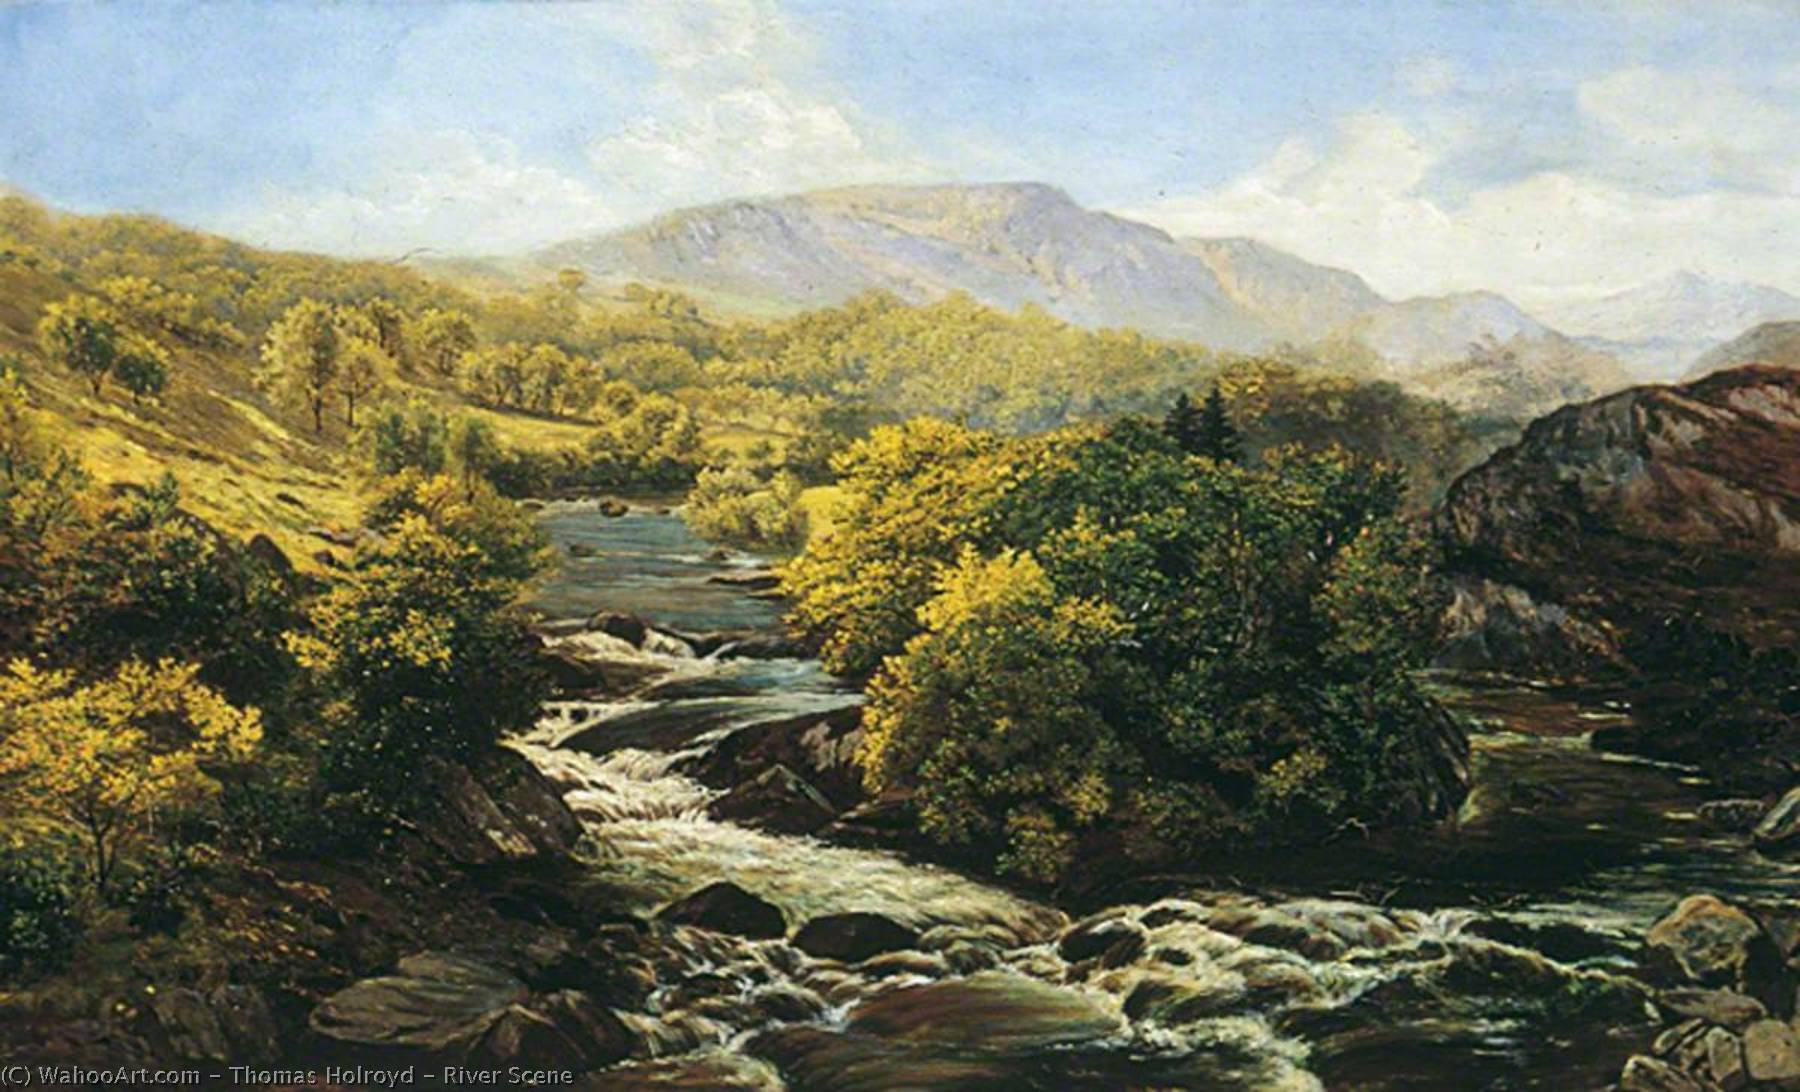 River Scene by Thomas Holroyd | Art Reproduction | WahooArt.com